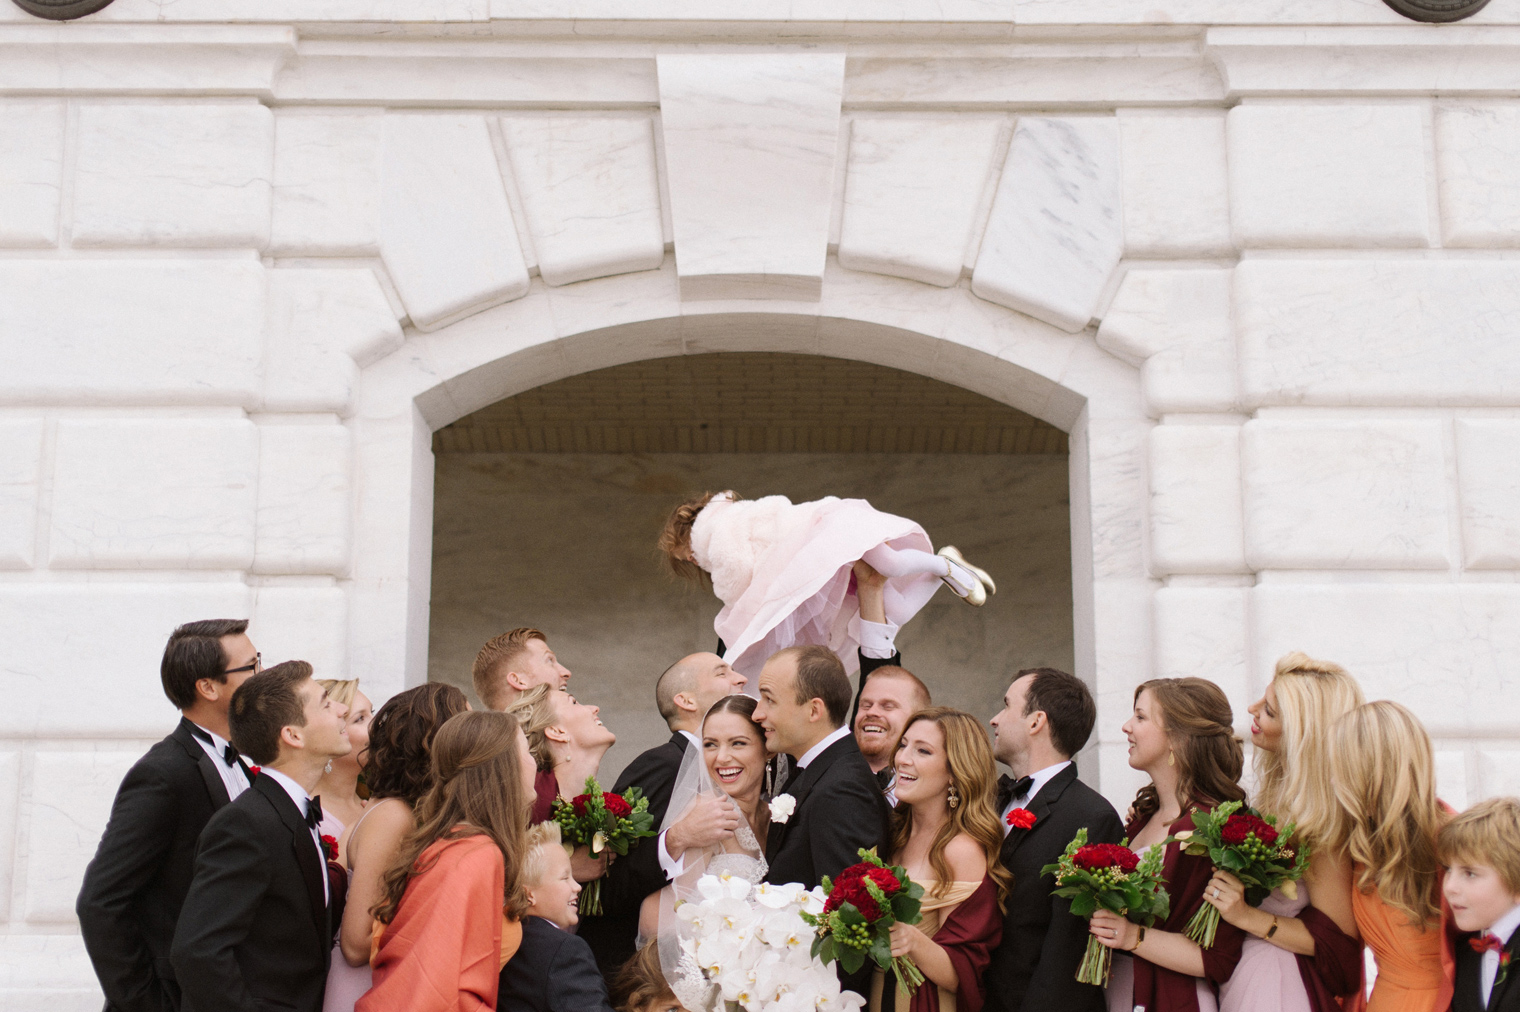 Bridal party portraits at the Detroit Institute of Arts by Wedding Photographer Heather Jowett.